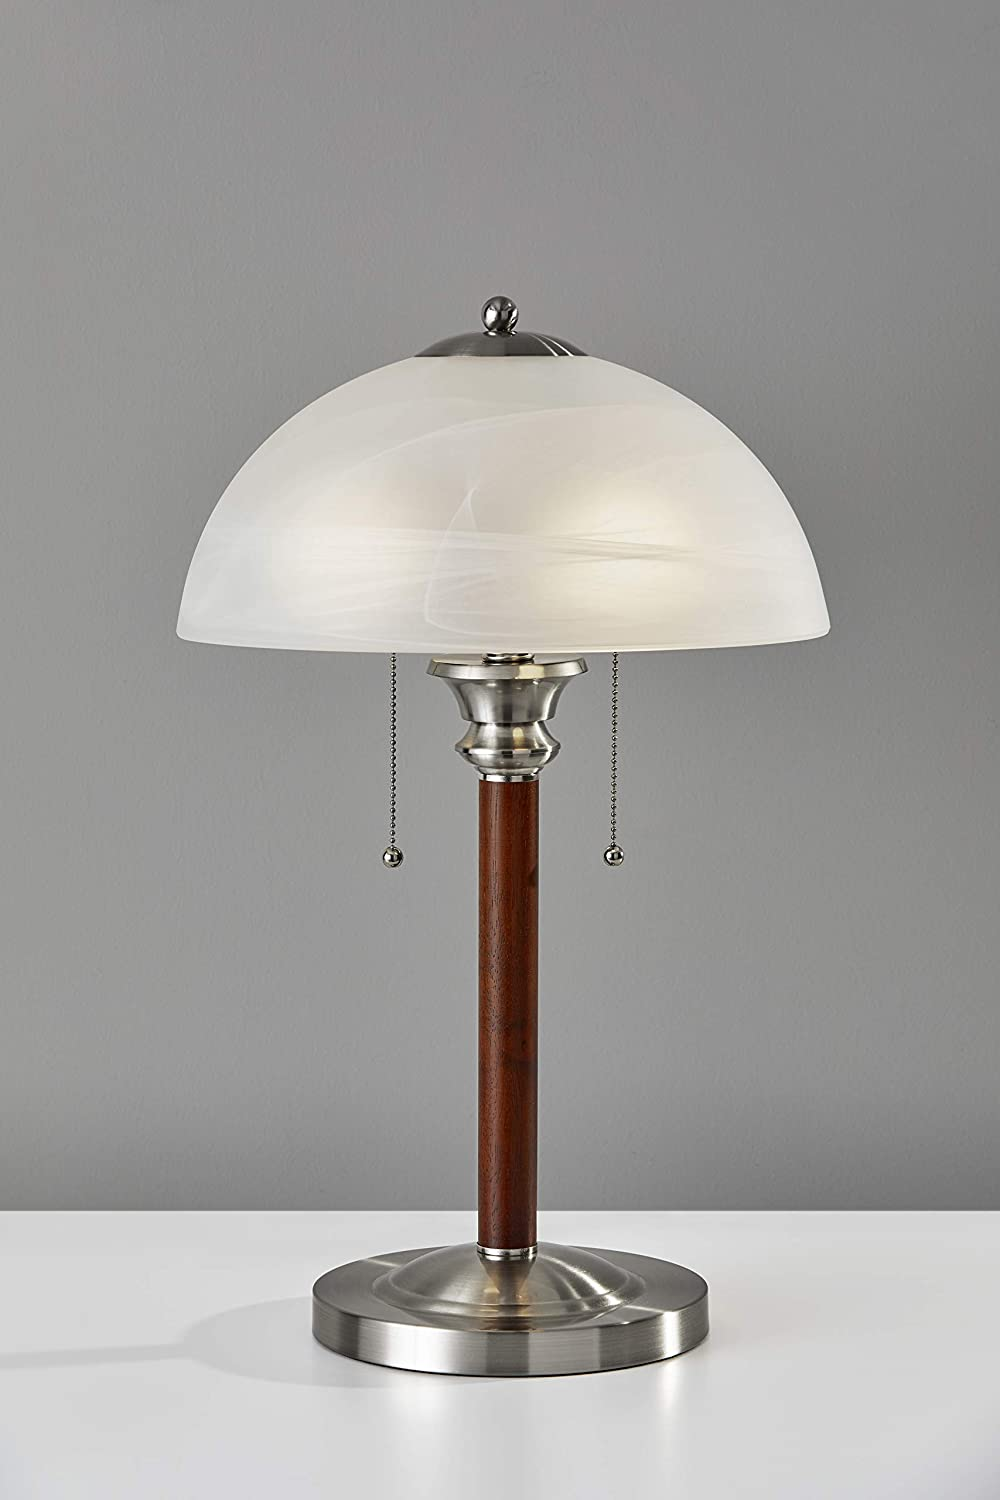 Adesso 4050 15 Lexington 22 5 Table Lamp Lighting Fixture With